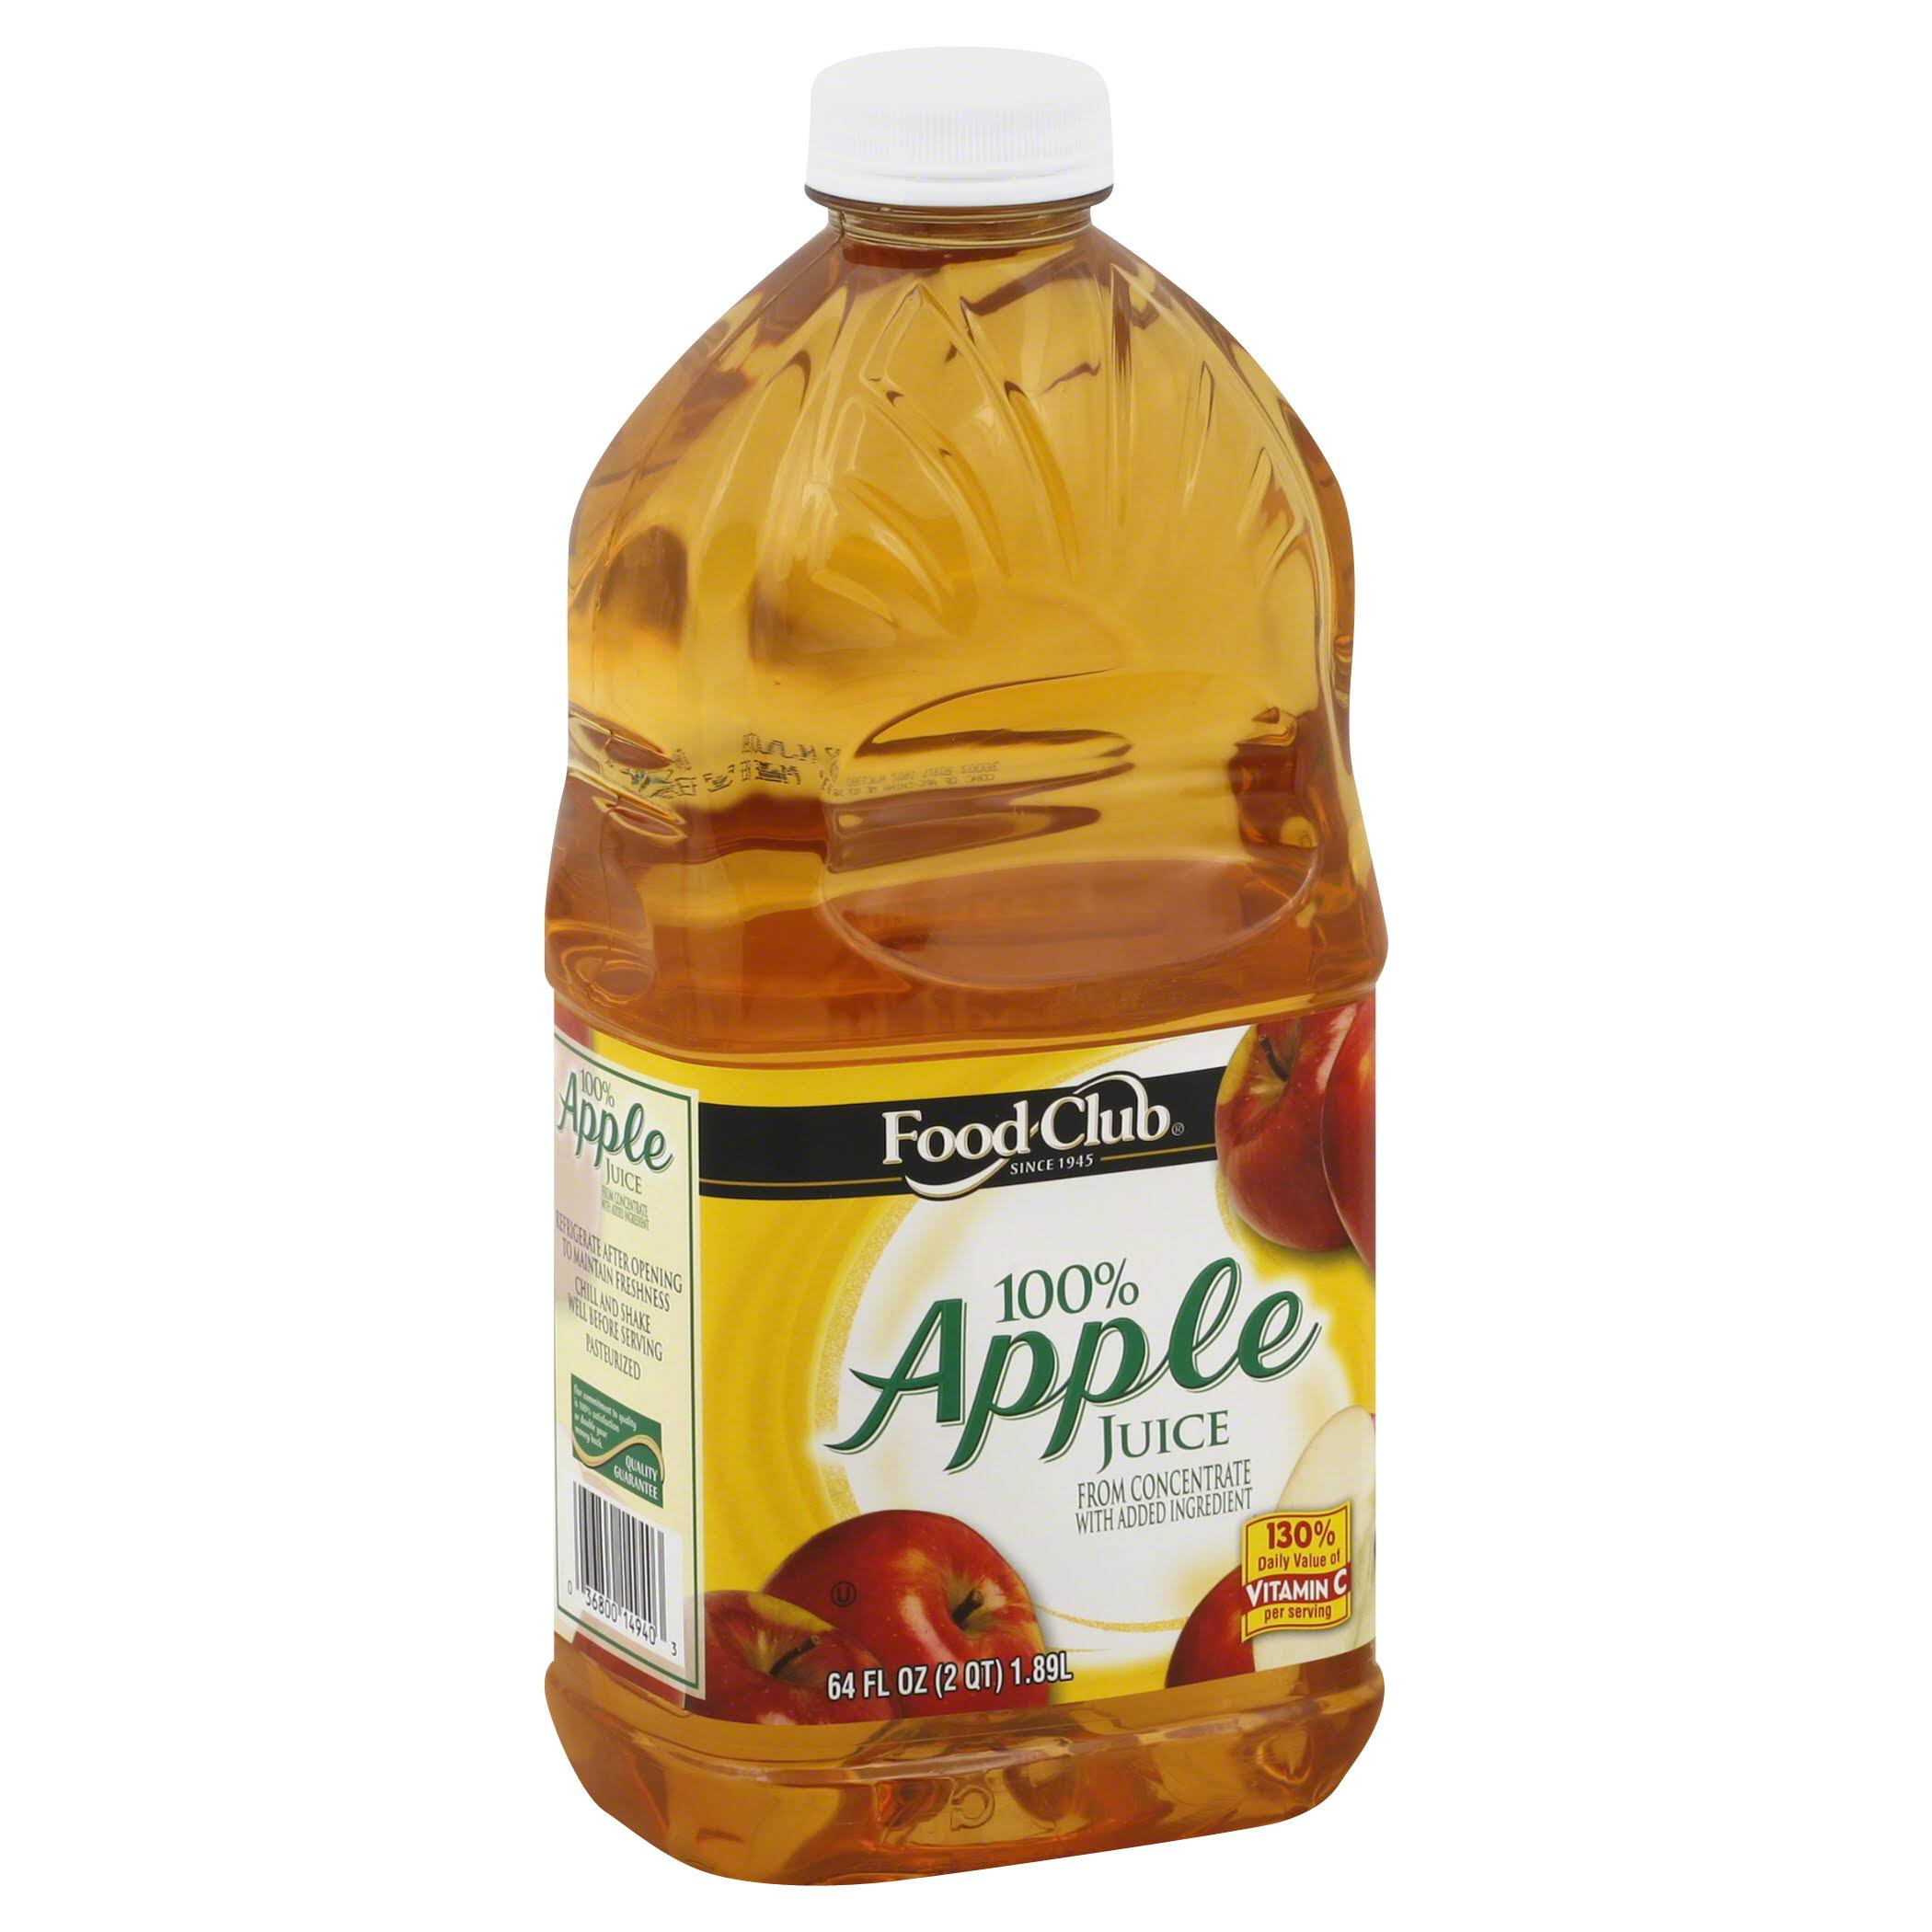 Food Club 100% Juice - Apple